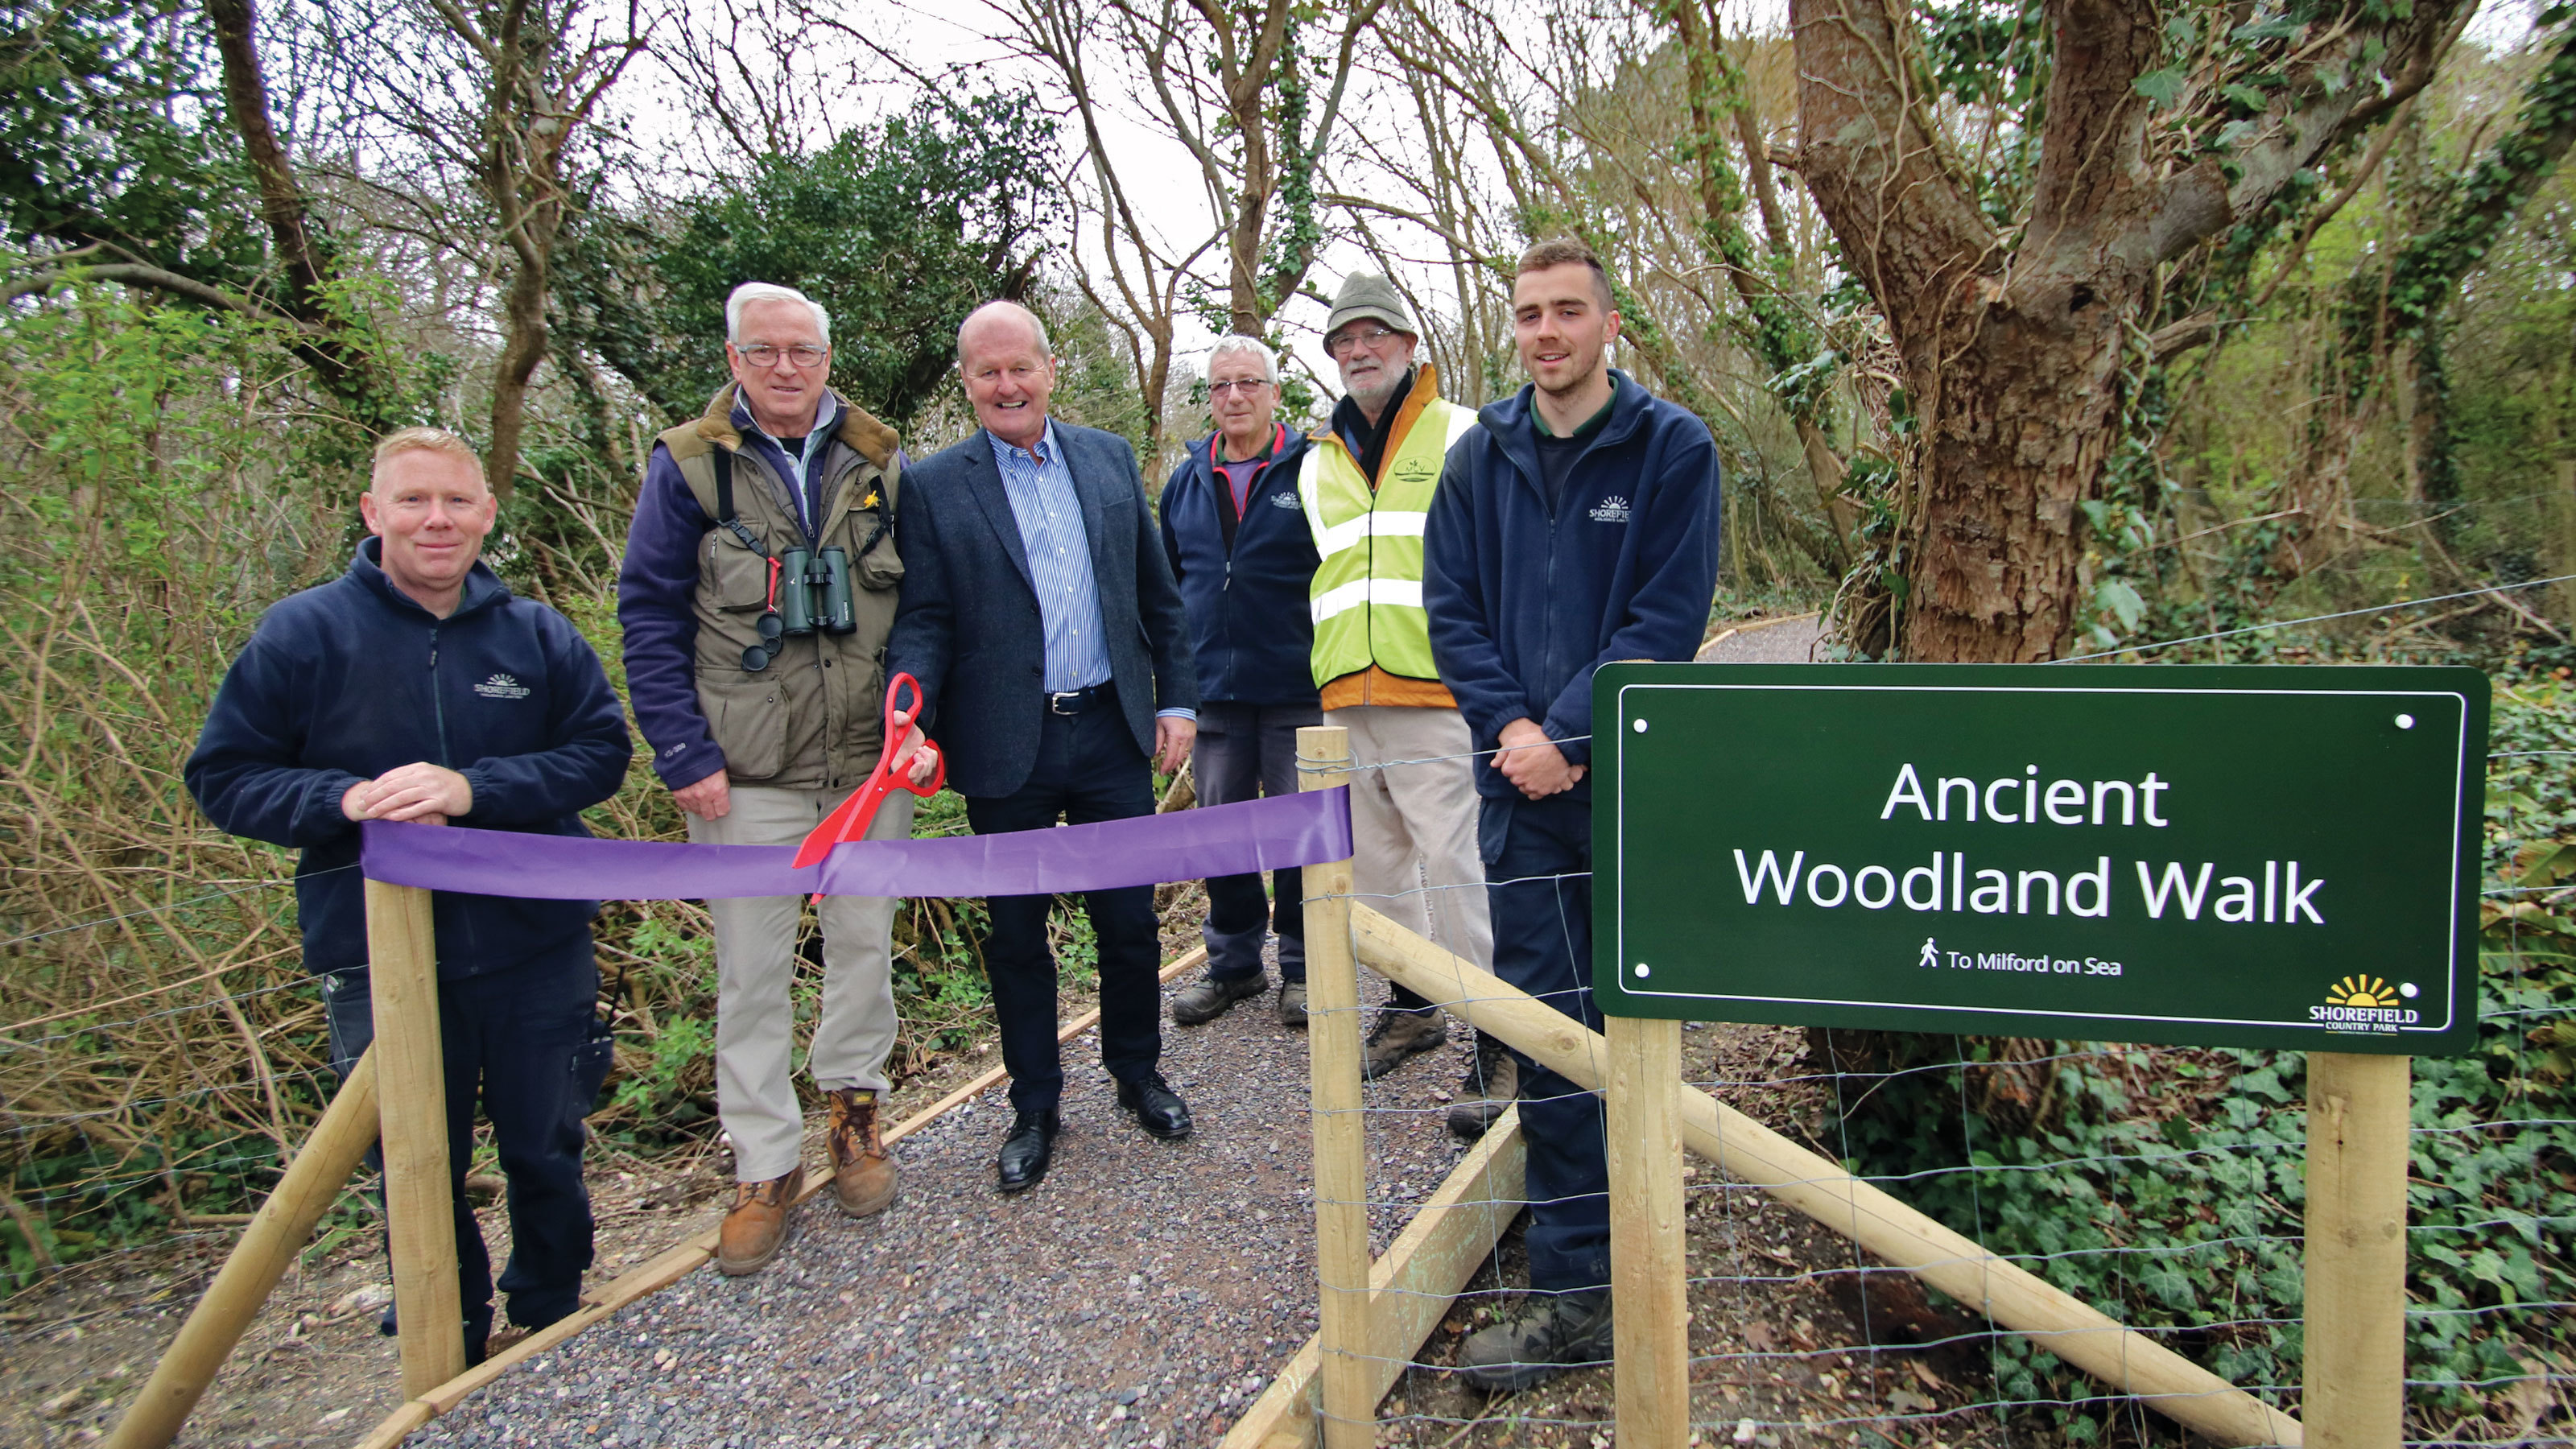 The-Estates-Gardening-Team-with-Keith-Metcalf-and-Tony-Locke-from-Milford-Conservation-Volunteers